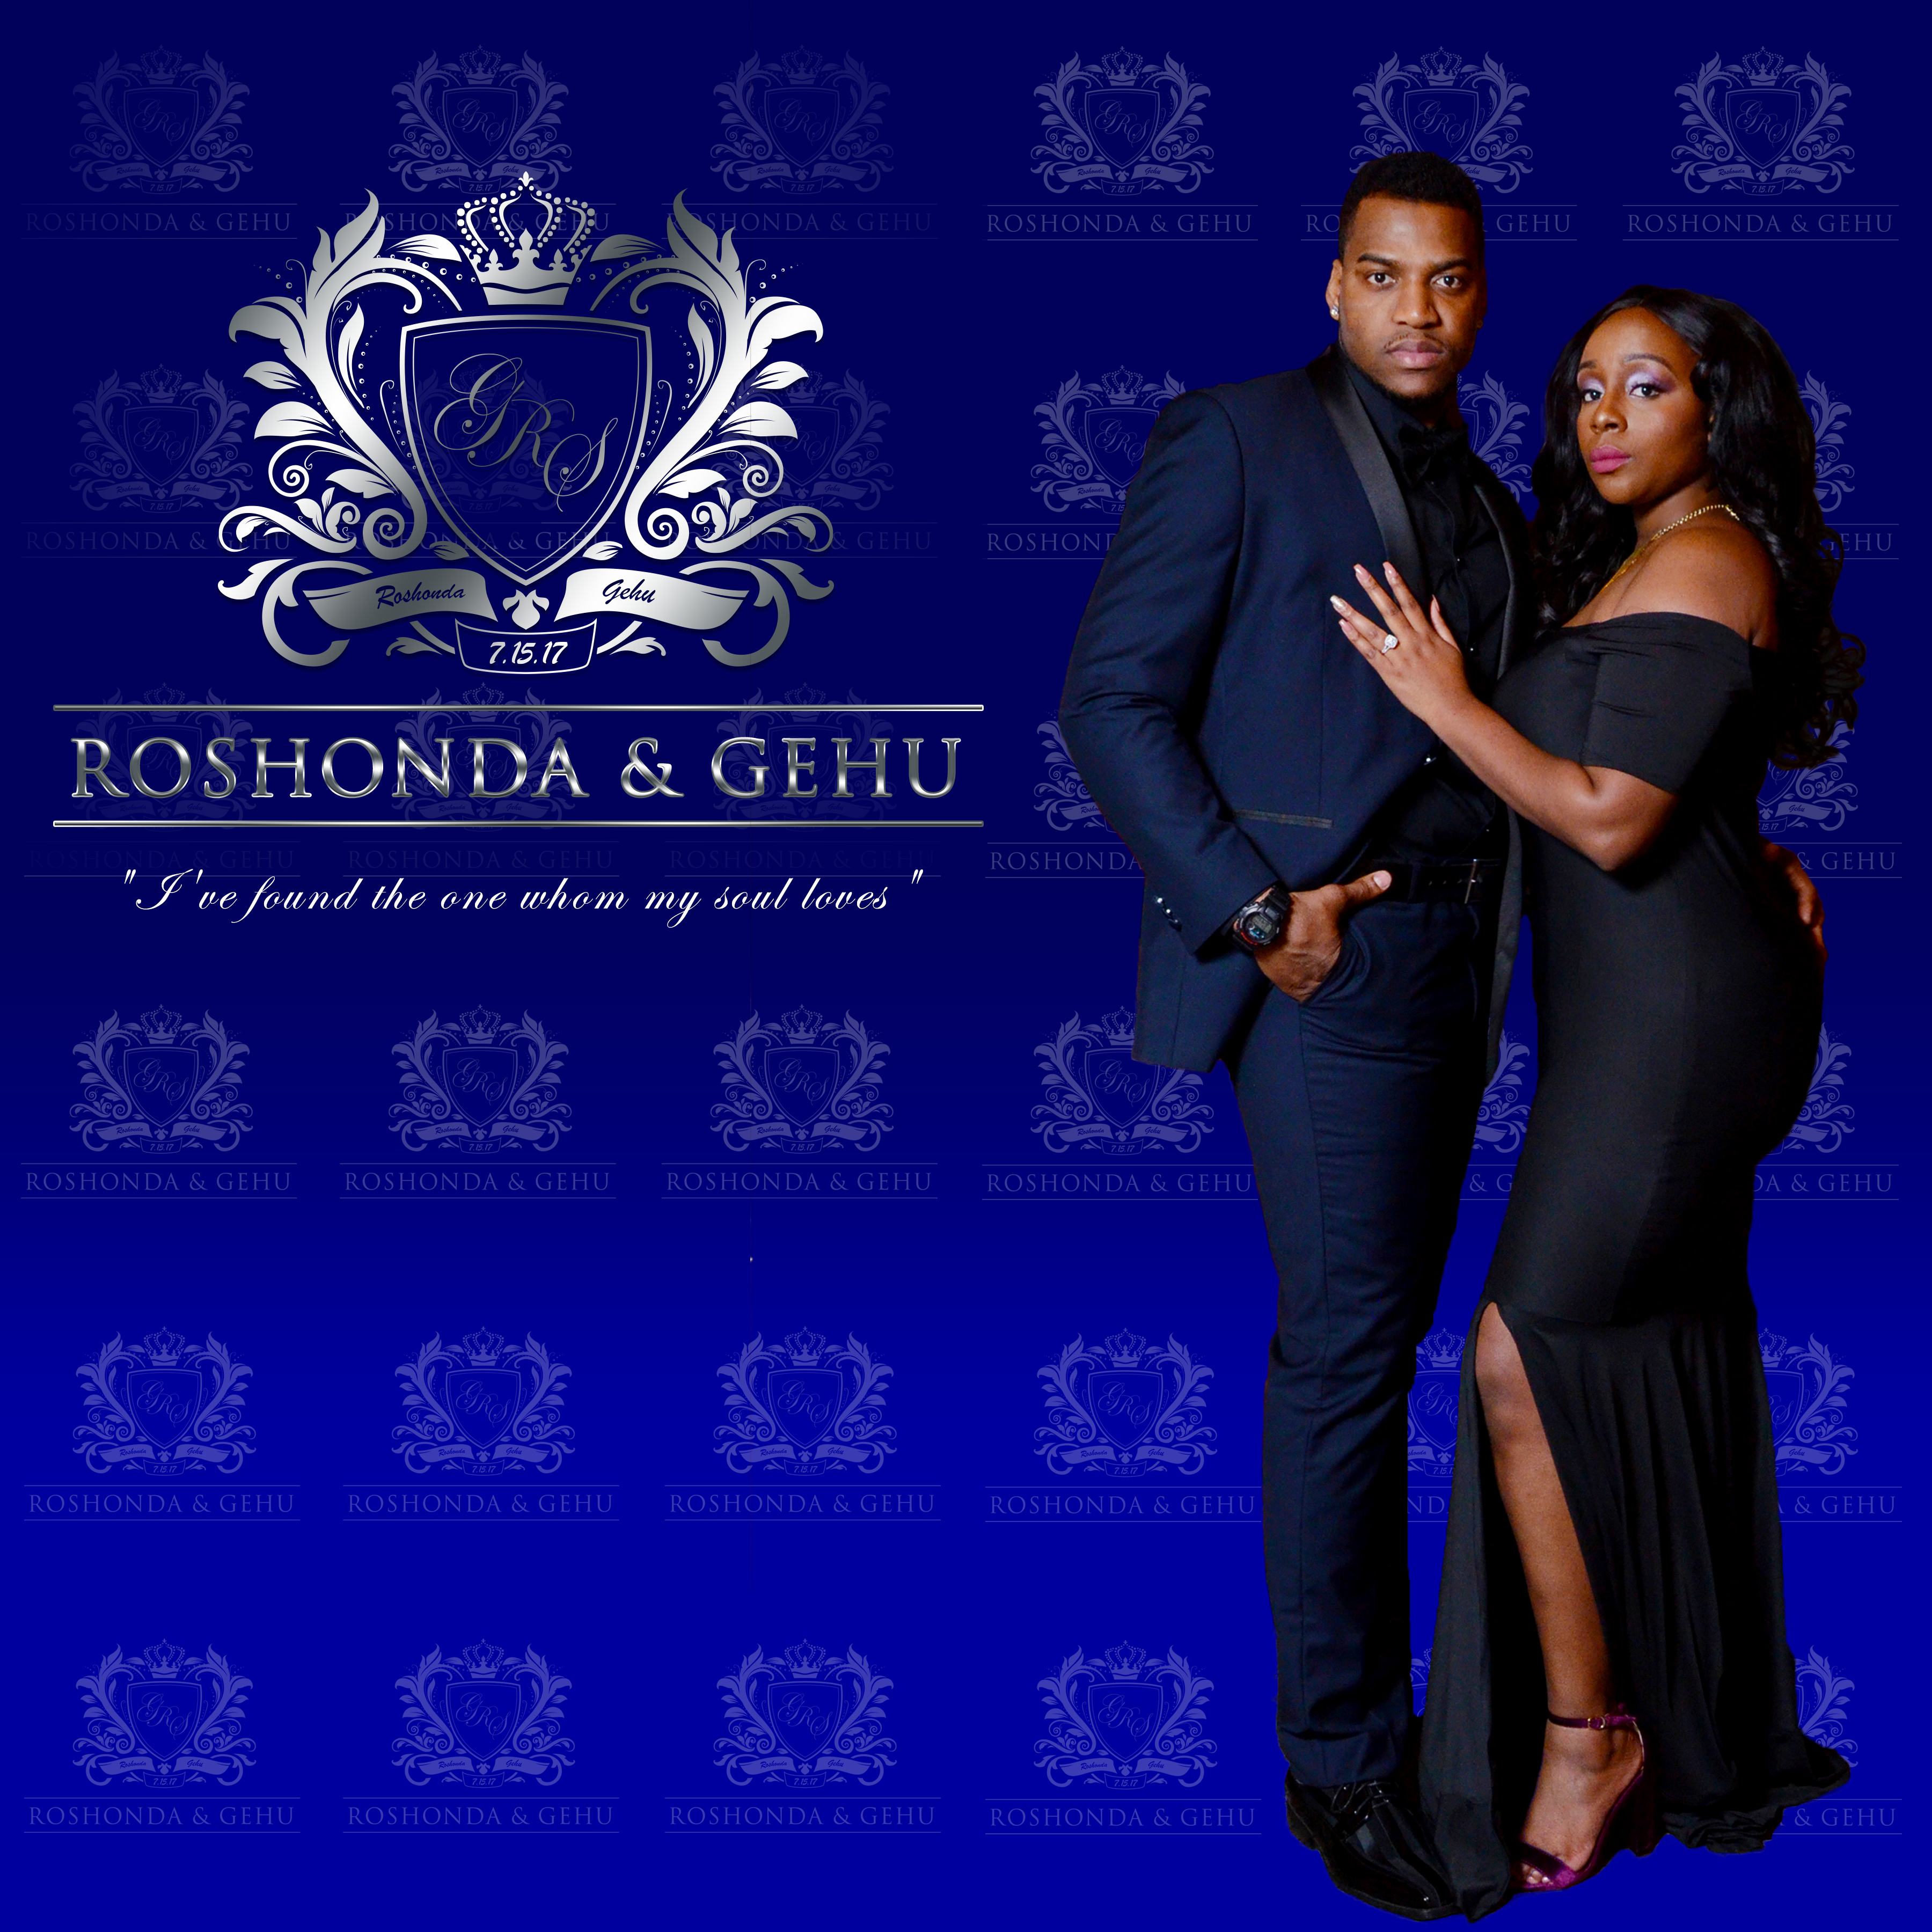 ROSHONDA_WEDDING_BANNER